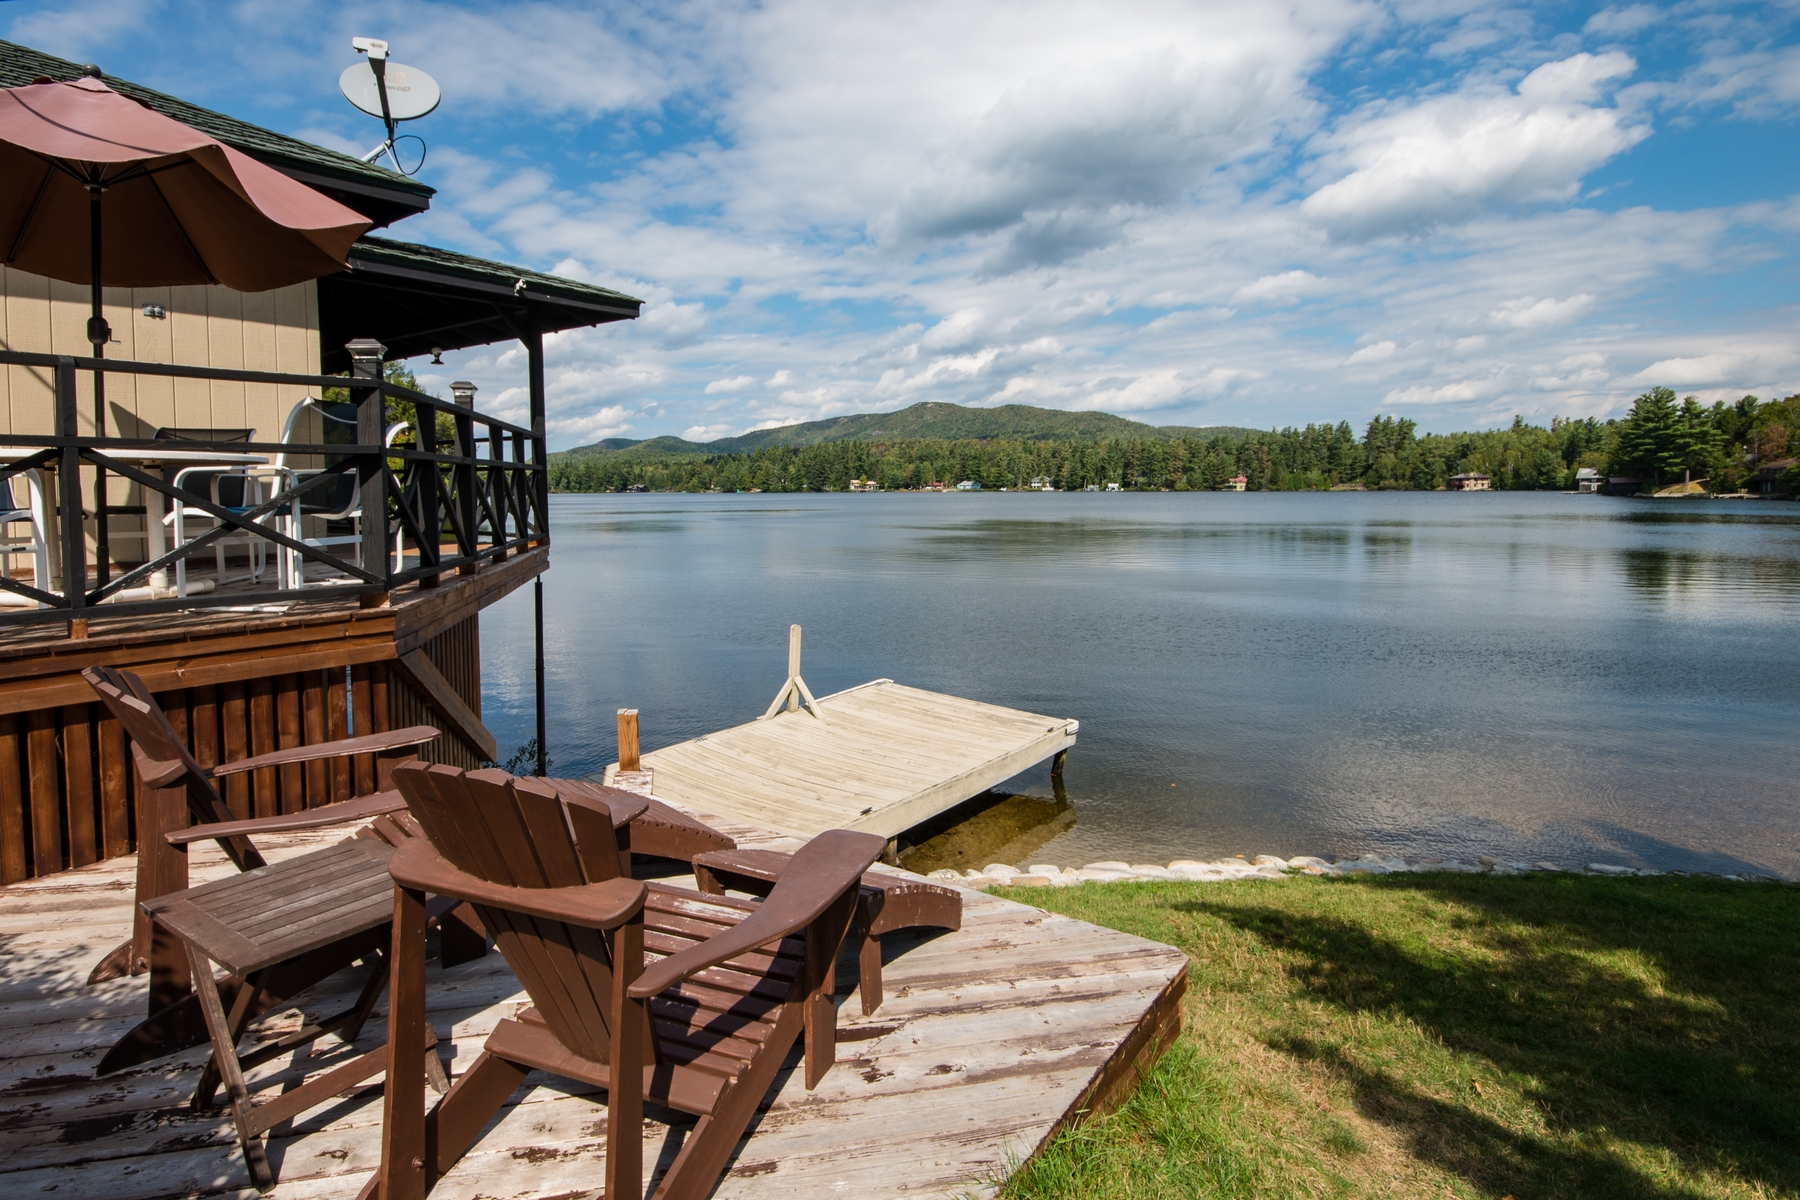 Additional photo for property listing at Lake's End Lodge 223  Blue Spruce Dr 鱼鹰湖, 纽约州 12989 美国